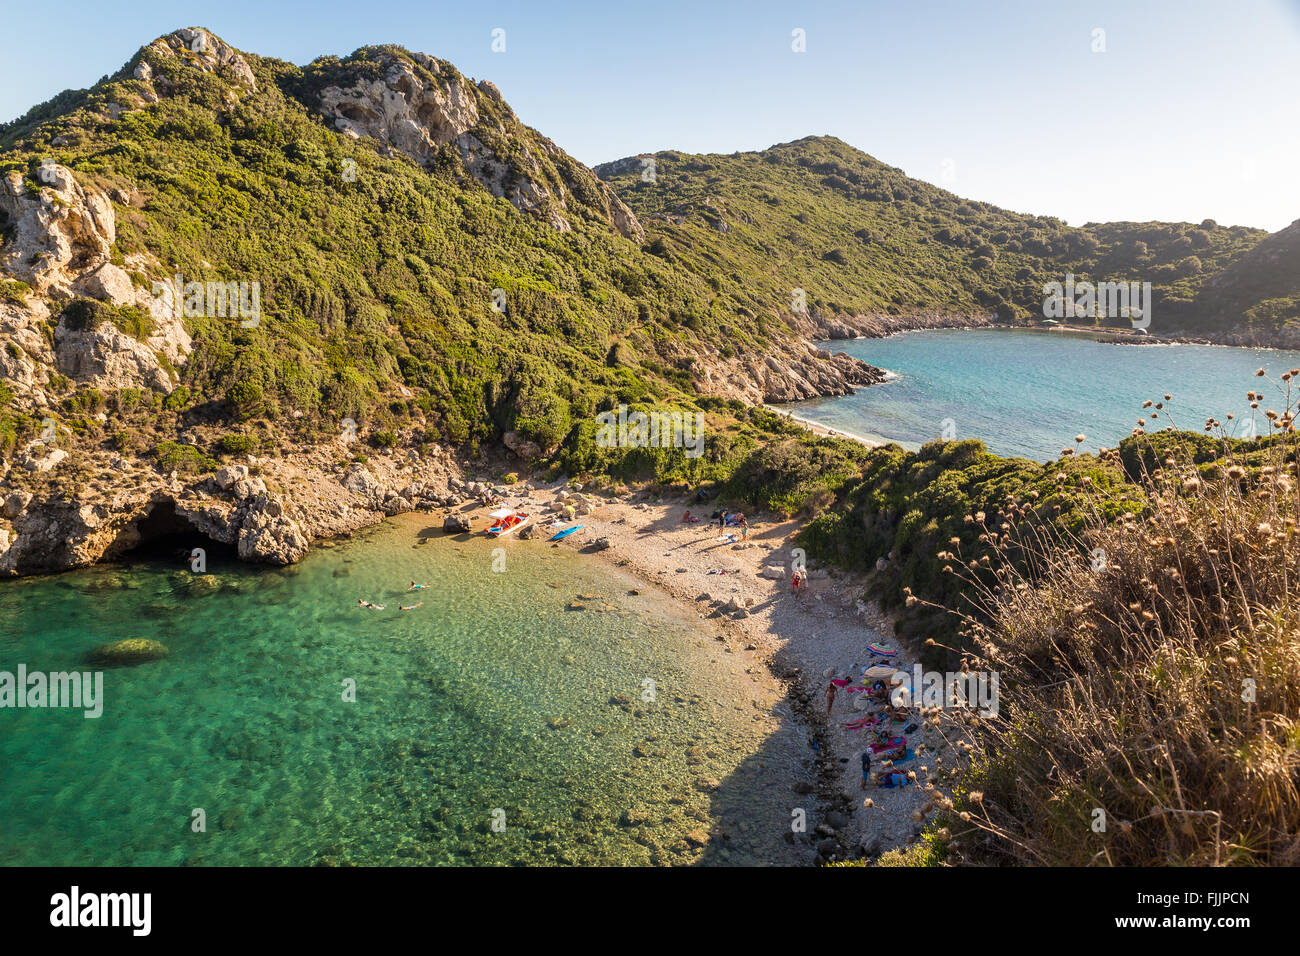 Landscape of Porto Timoni, Corfu, Greece - Stock Image